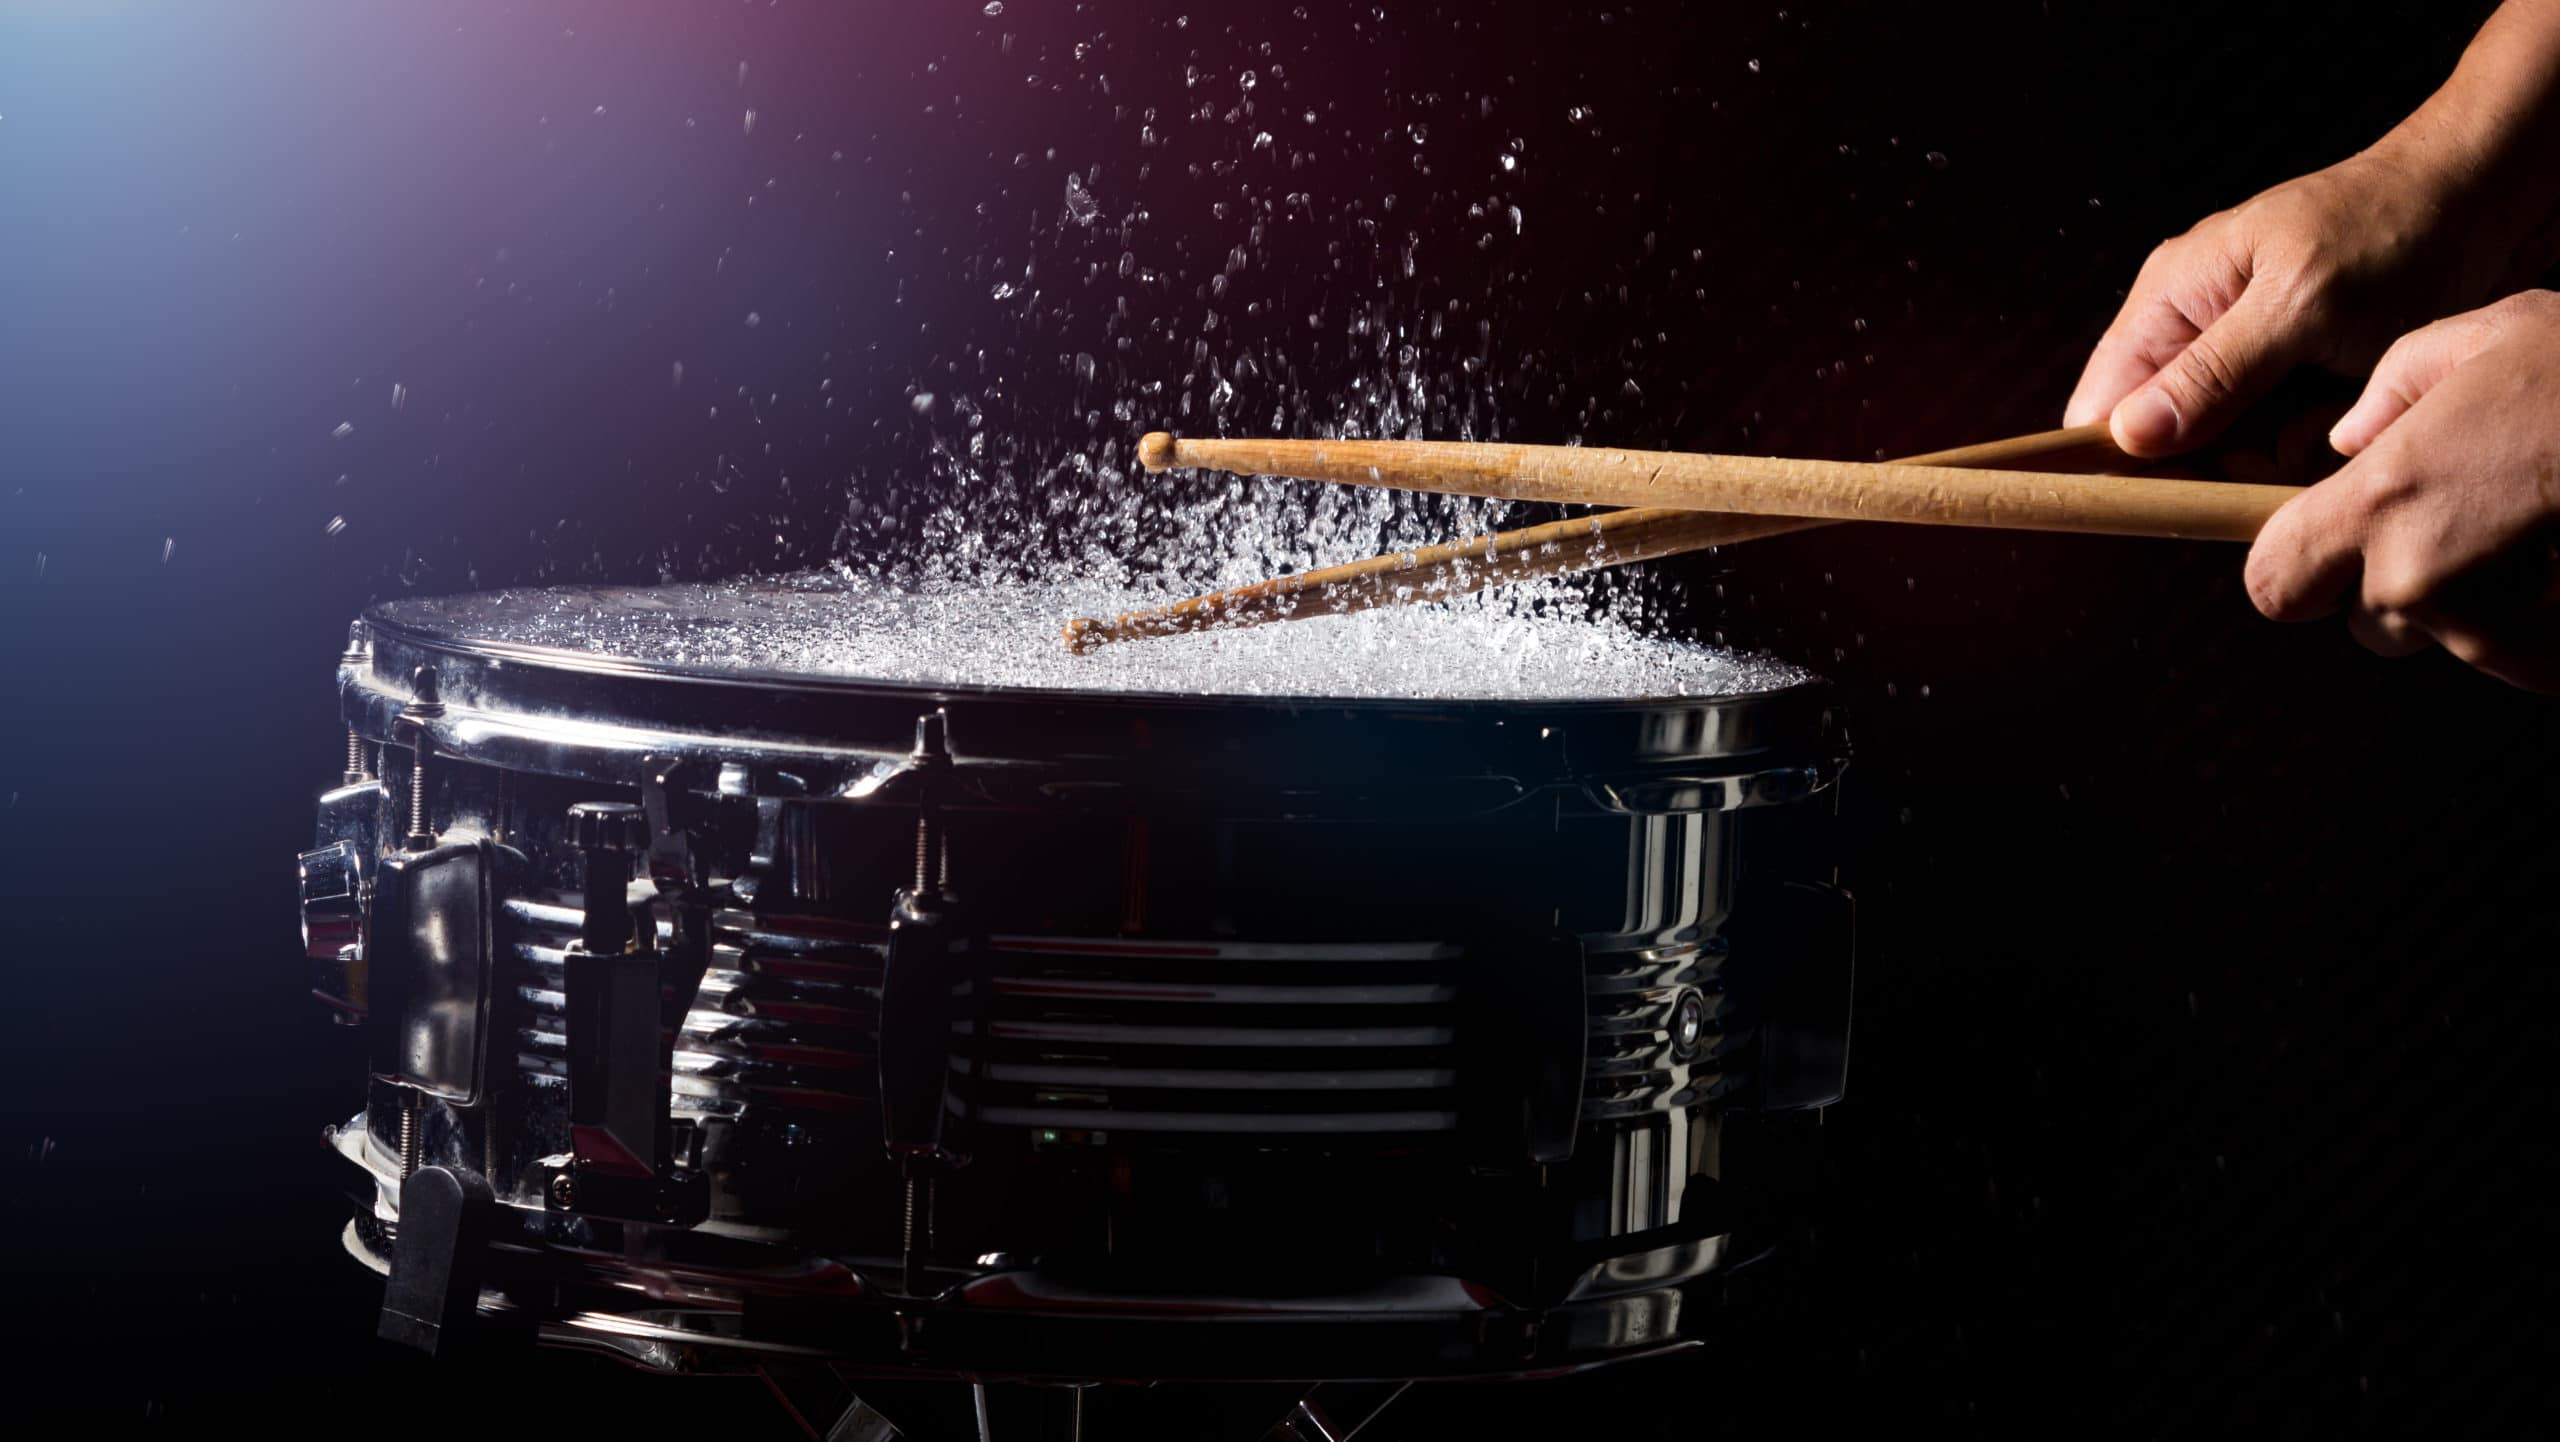 The drum sticks are hitting on the snare drum with splash water in low light background